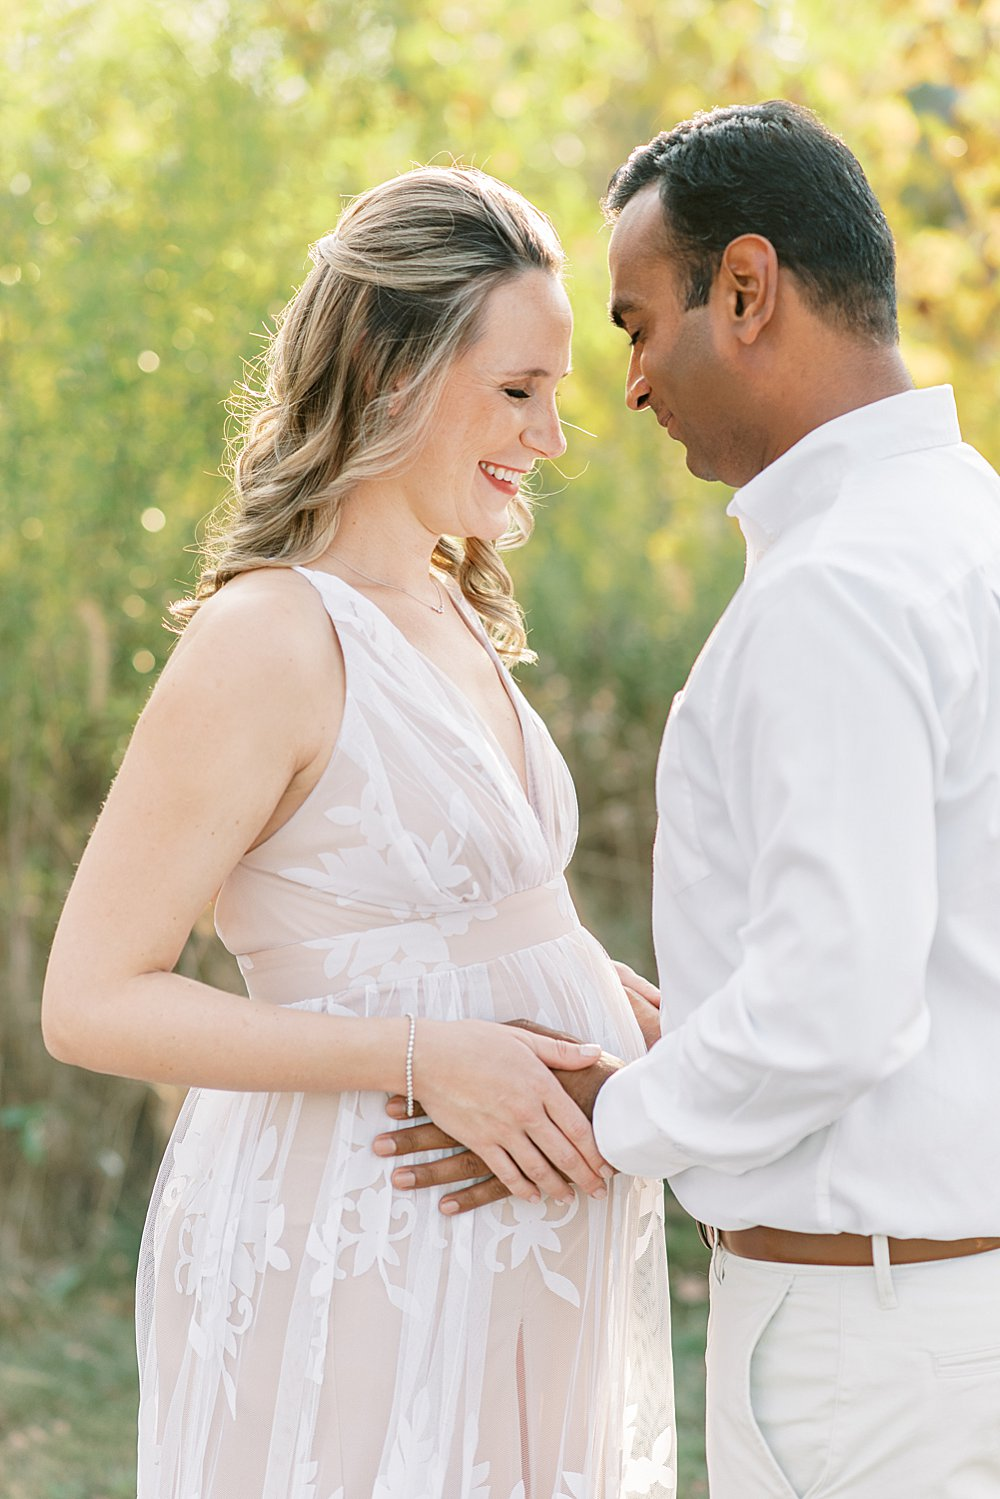 Outdoor maternity session with Zionsville maternity photographer Lindsay Konopa Photography